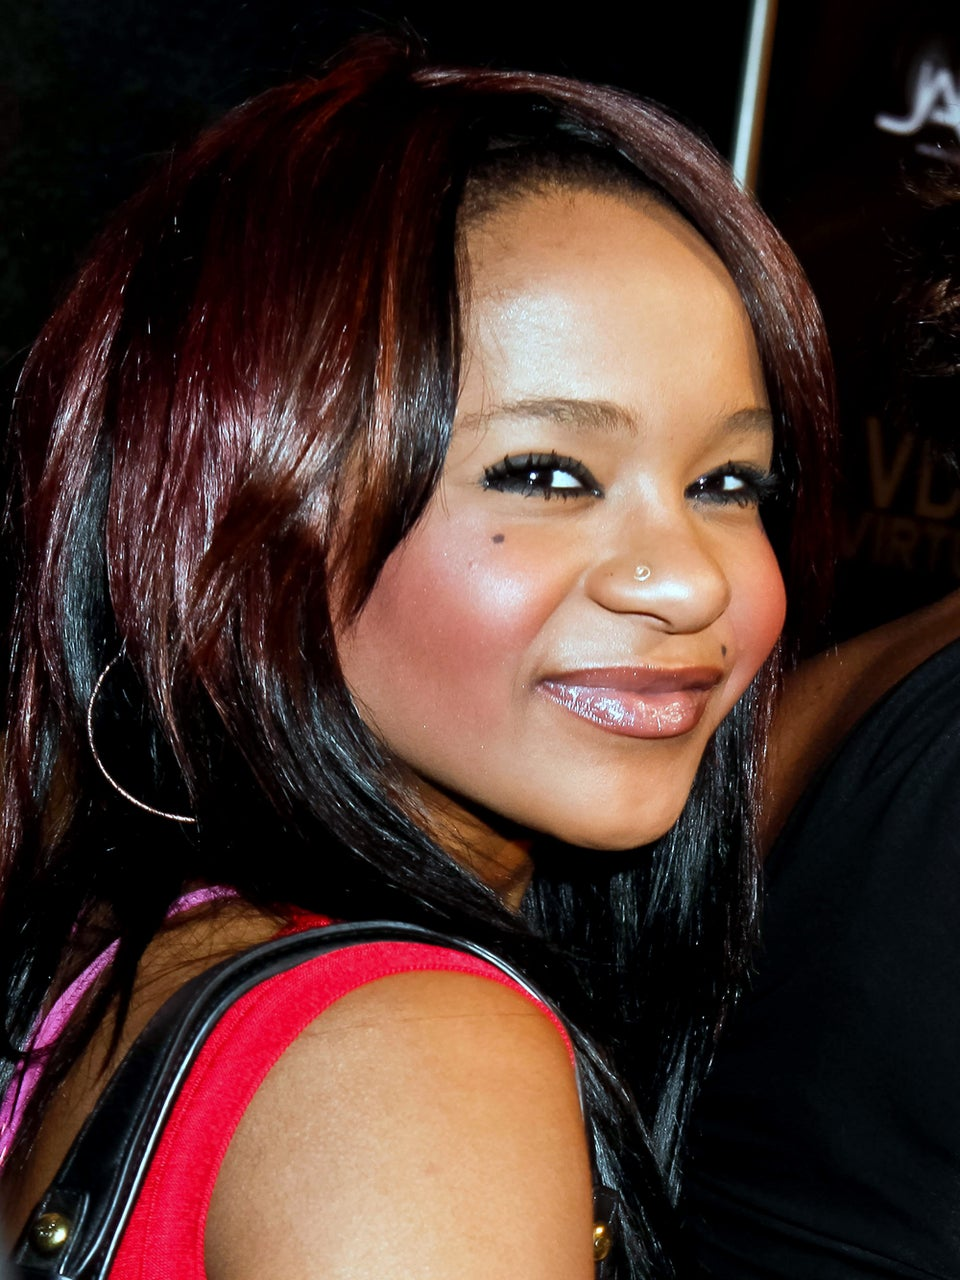 Family Members Say Goodbye to Bobbi Kristina as They Prepare for the Worst